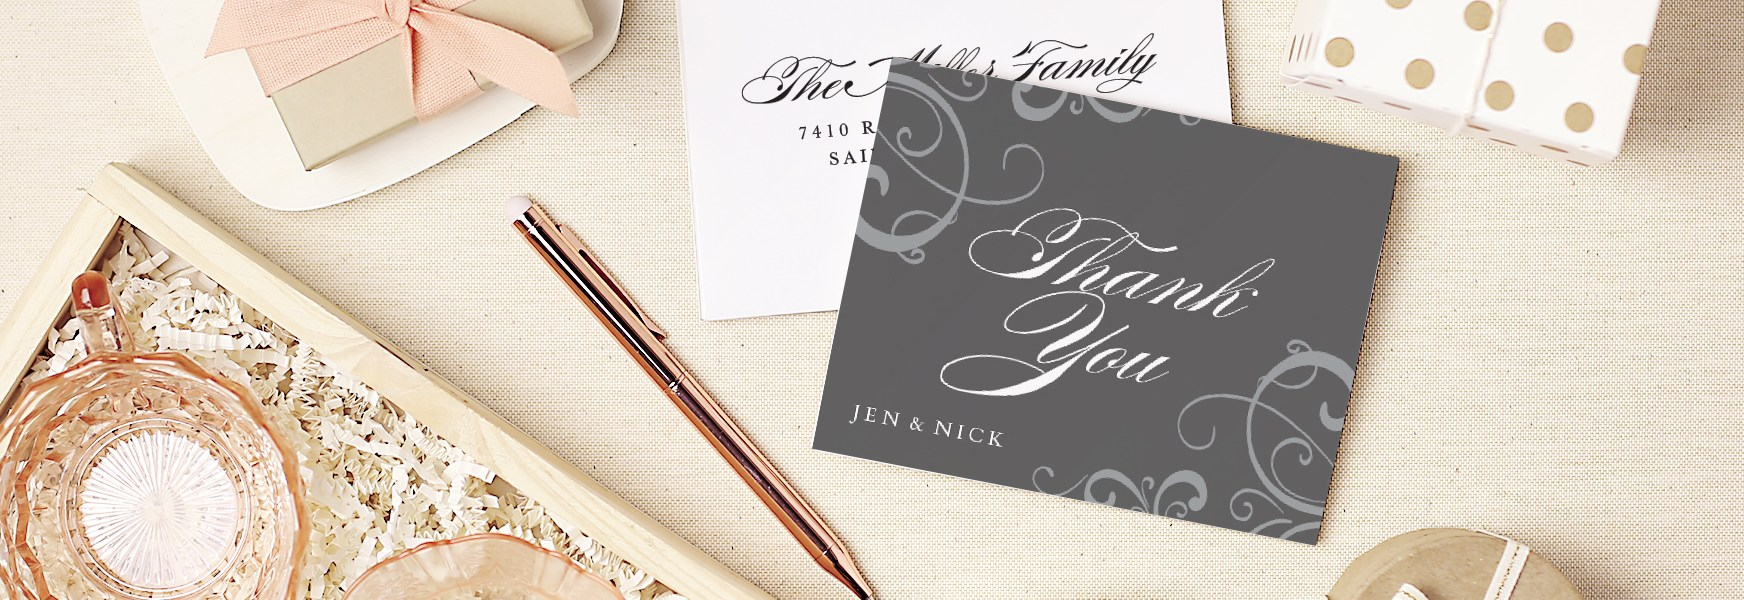 Why I'm Obsessed with Basic Invite's Thank You Cards